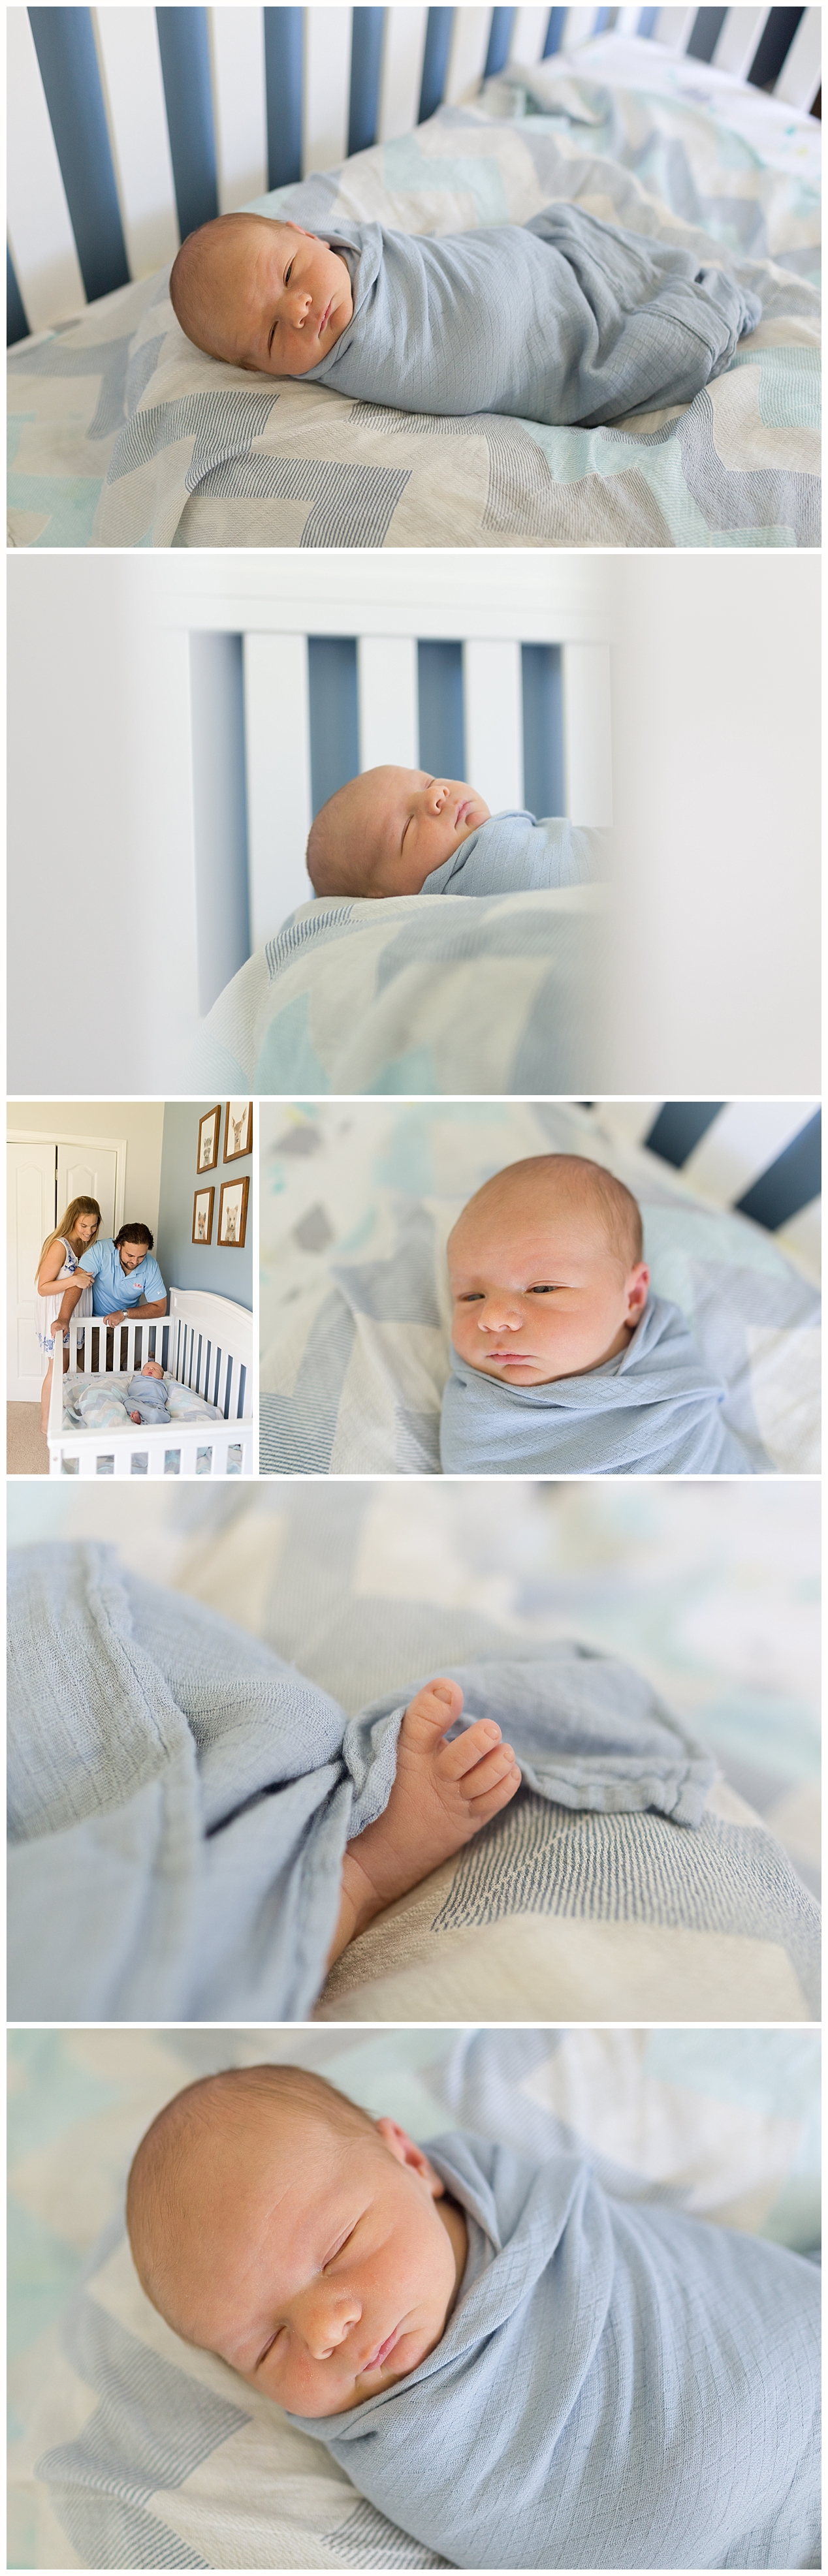 newborn baby boy swaddled and napping in crib - Ocean Springs newborn photographer